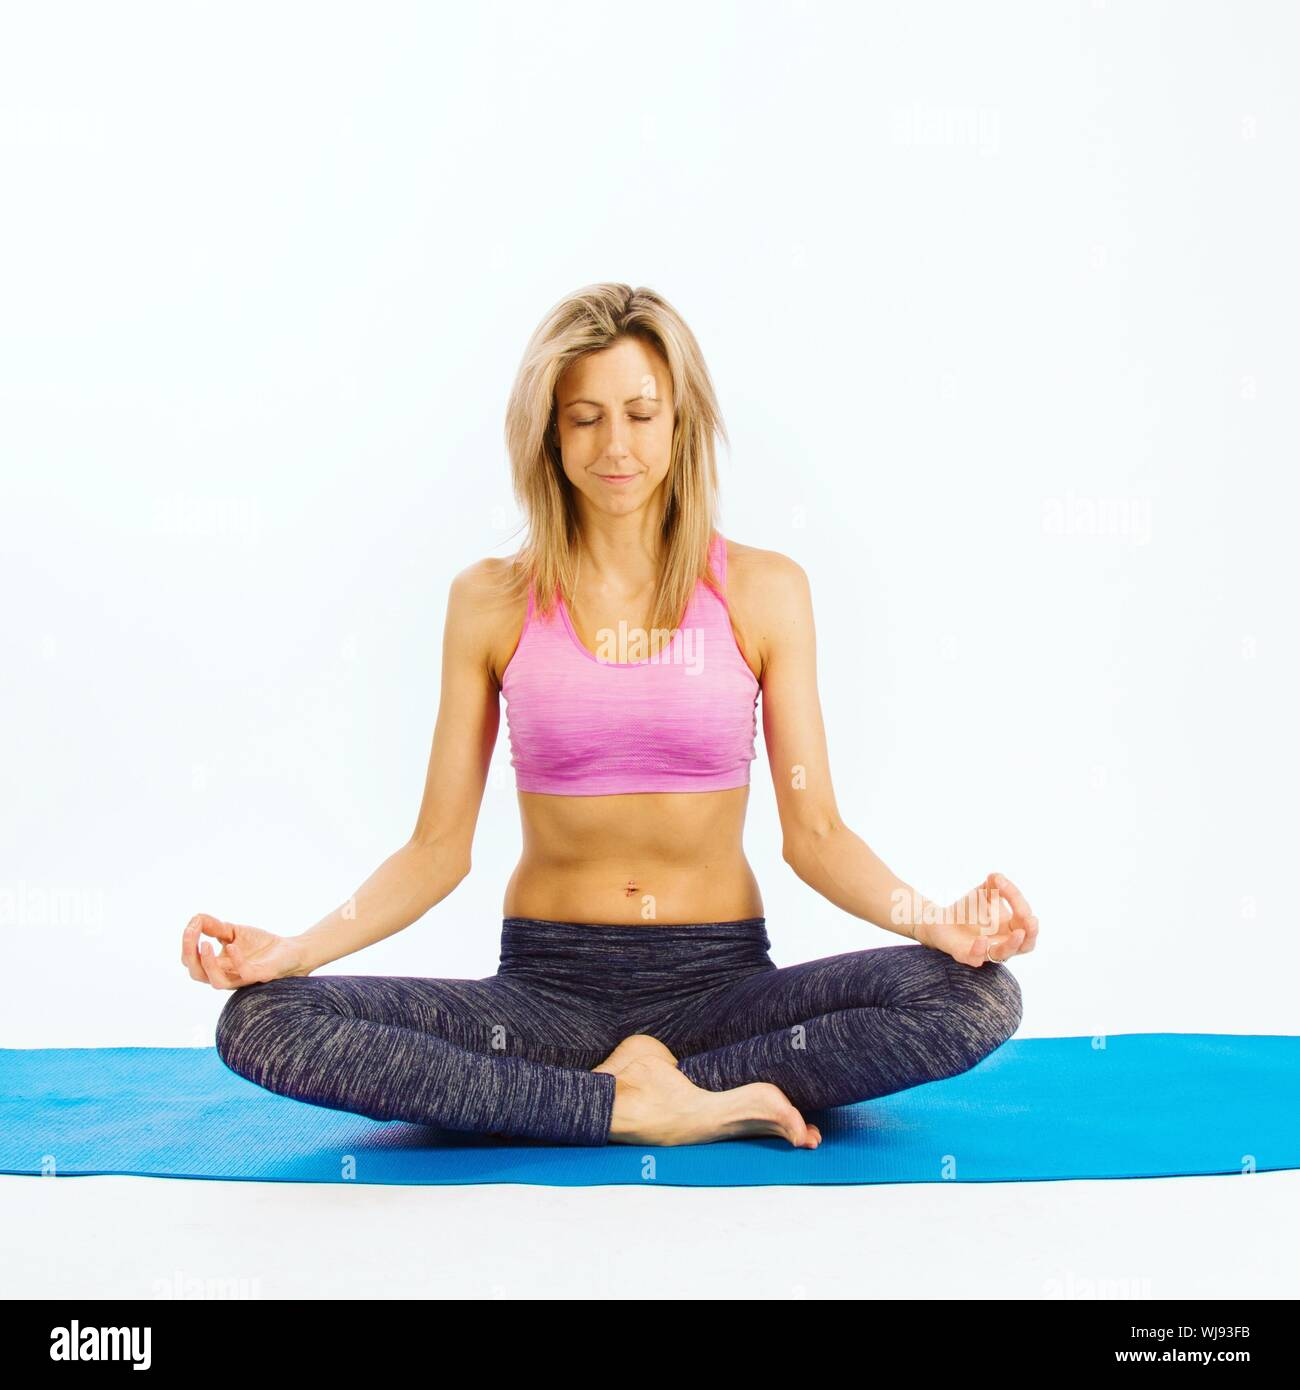 Beautiful Woman Practicing Lotus Position On Yoga Mat Against White Background Stock Photo Alamy